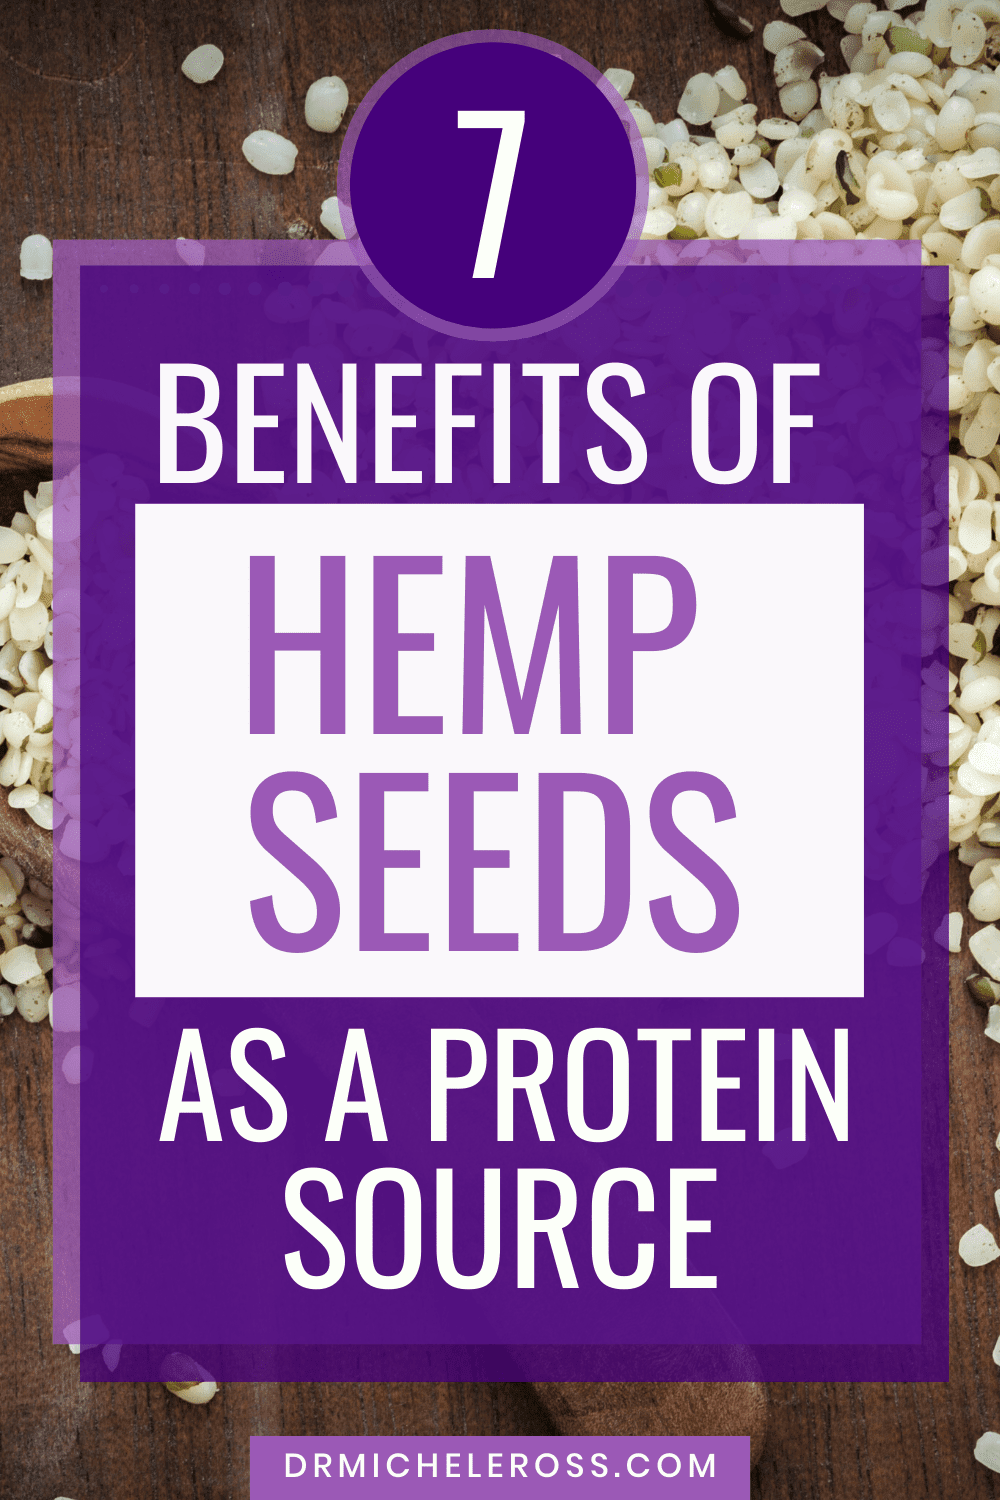 7 Benefits of Using Hemp Seeds for Protein